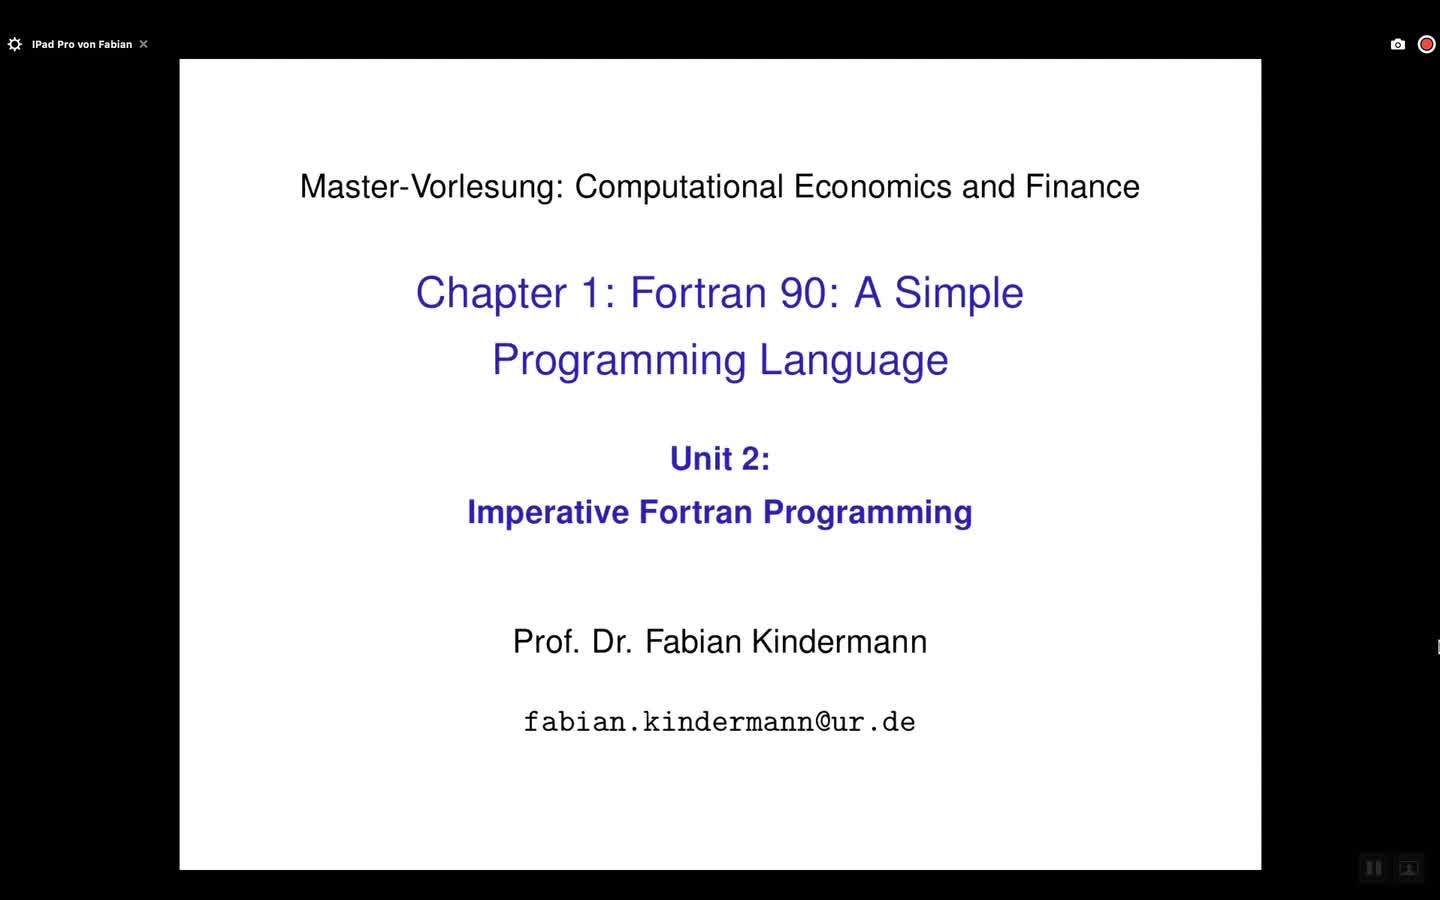 Chapter 1 - Unit 2 - Imperative Fortran Programming